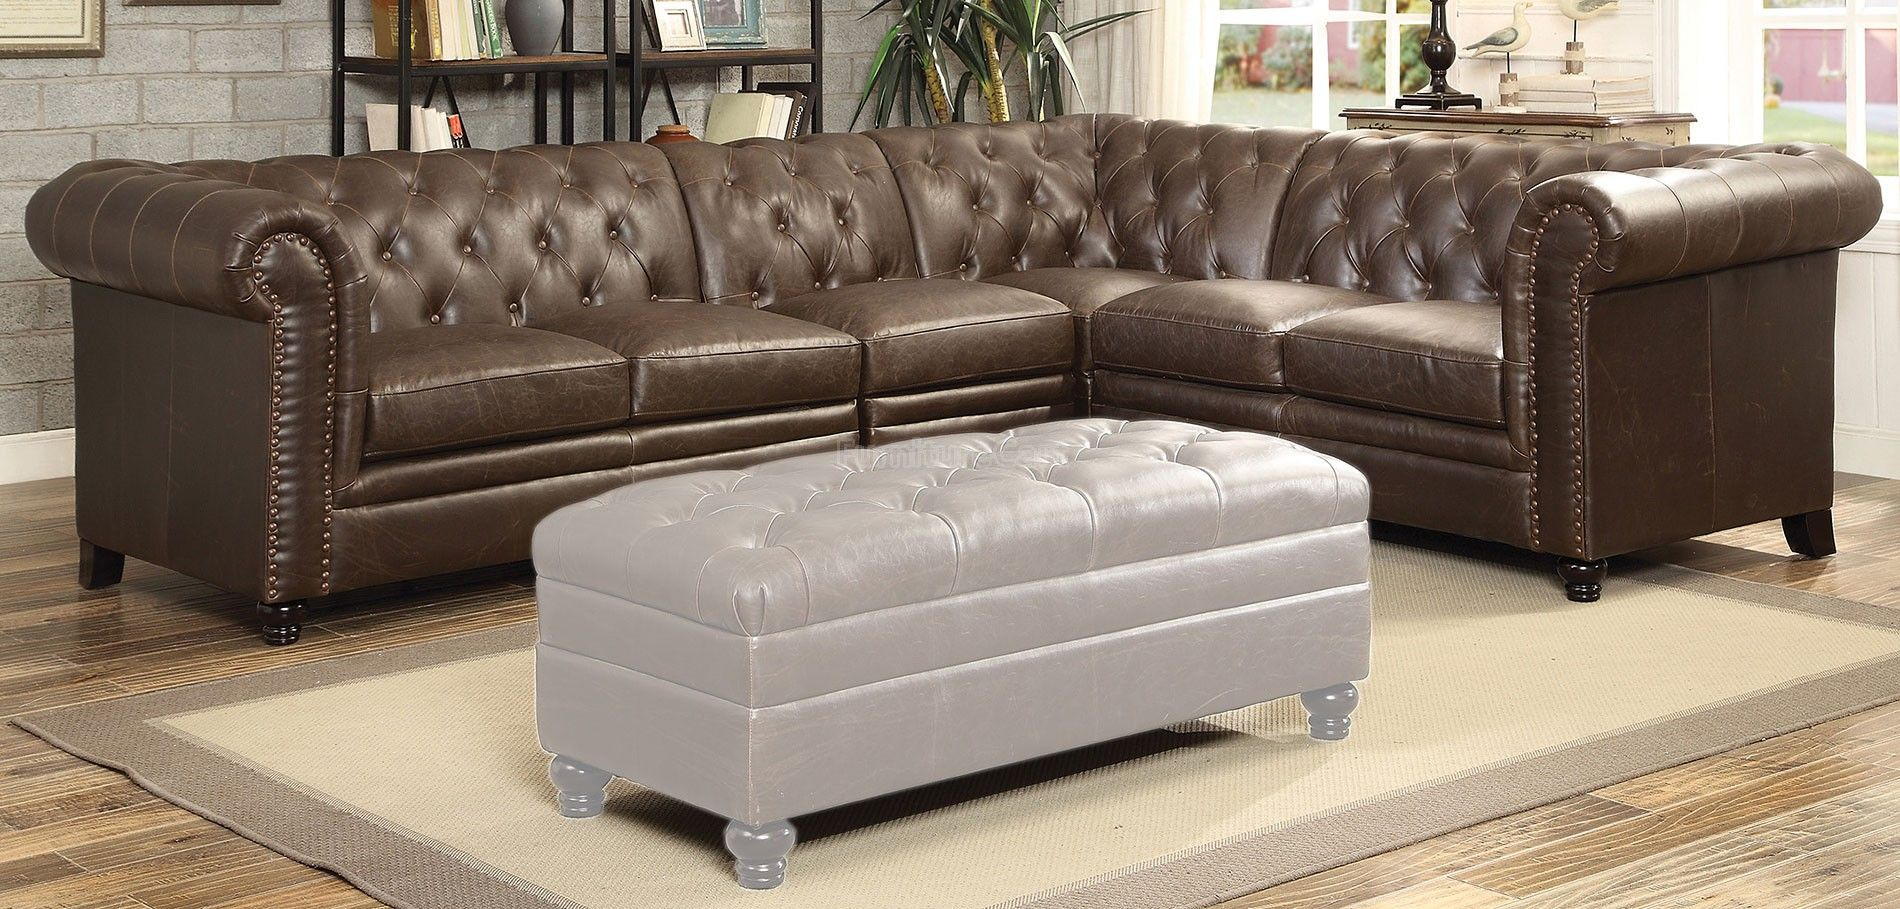 Roy Modular Sectional Brown Tufted Sectional Sofa Leather Sectional Sofas Tufted Sectional